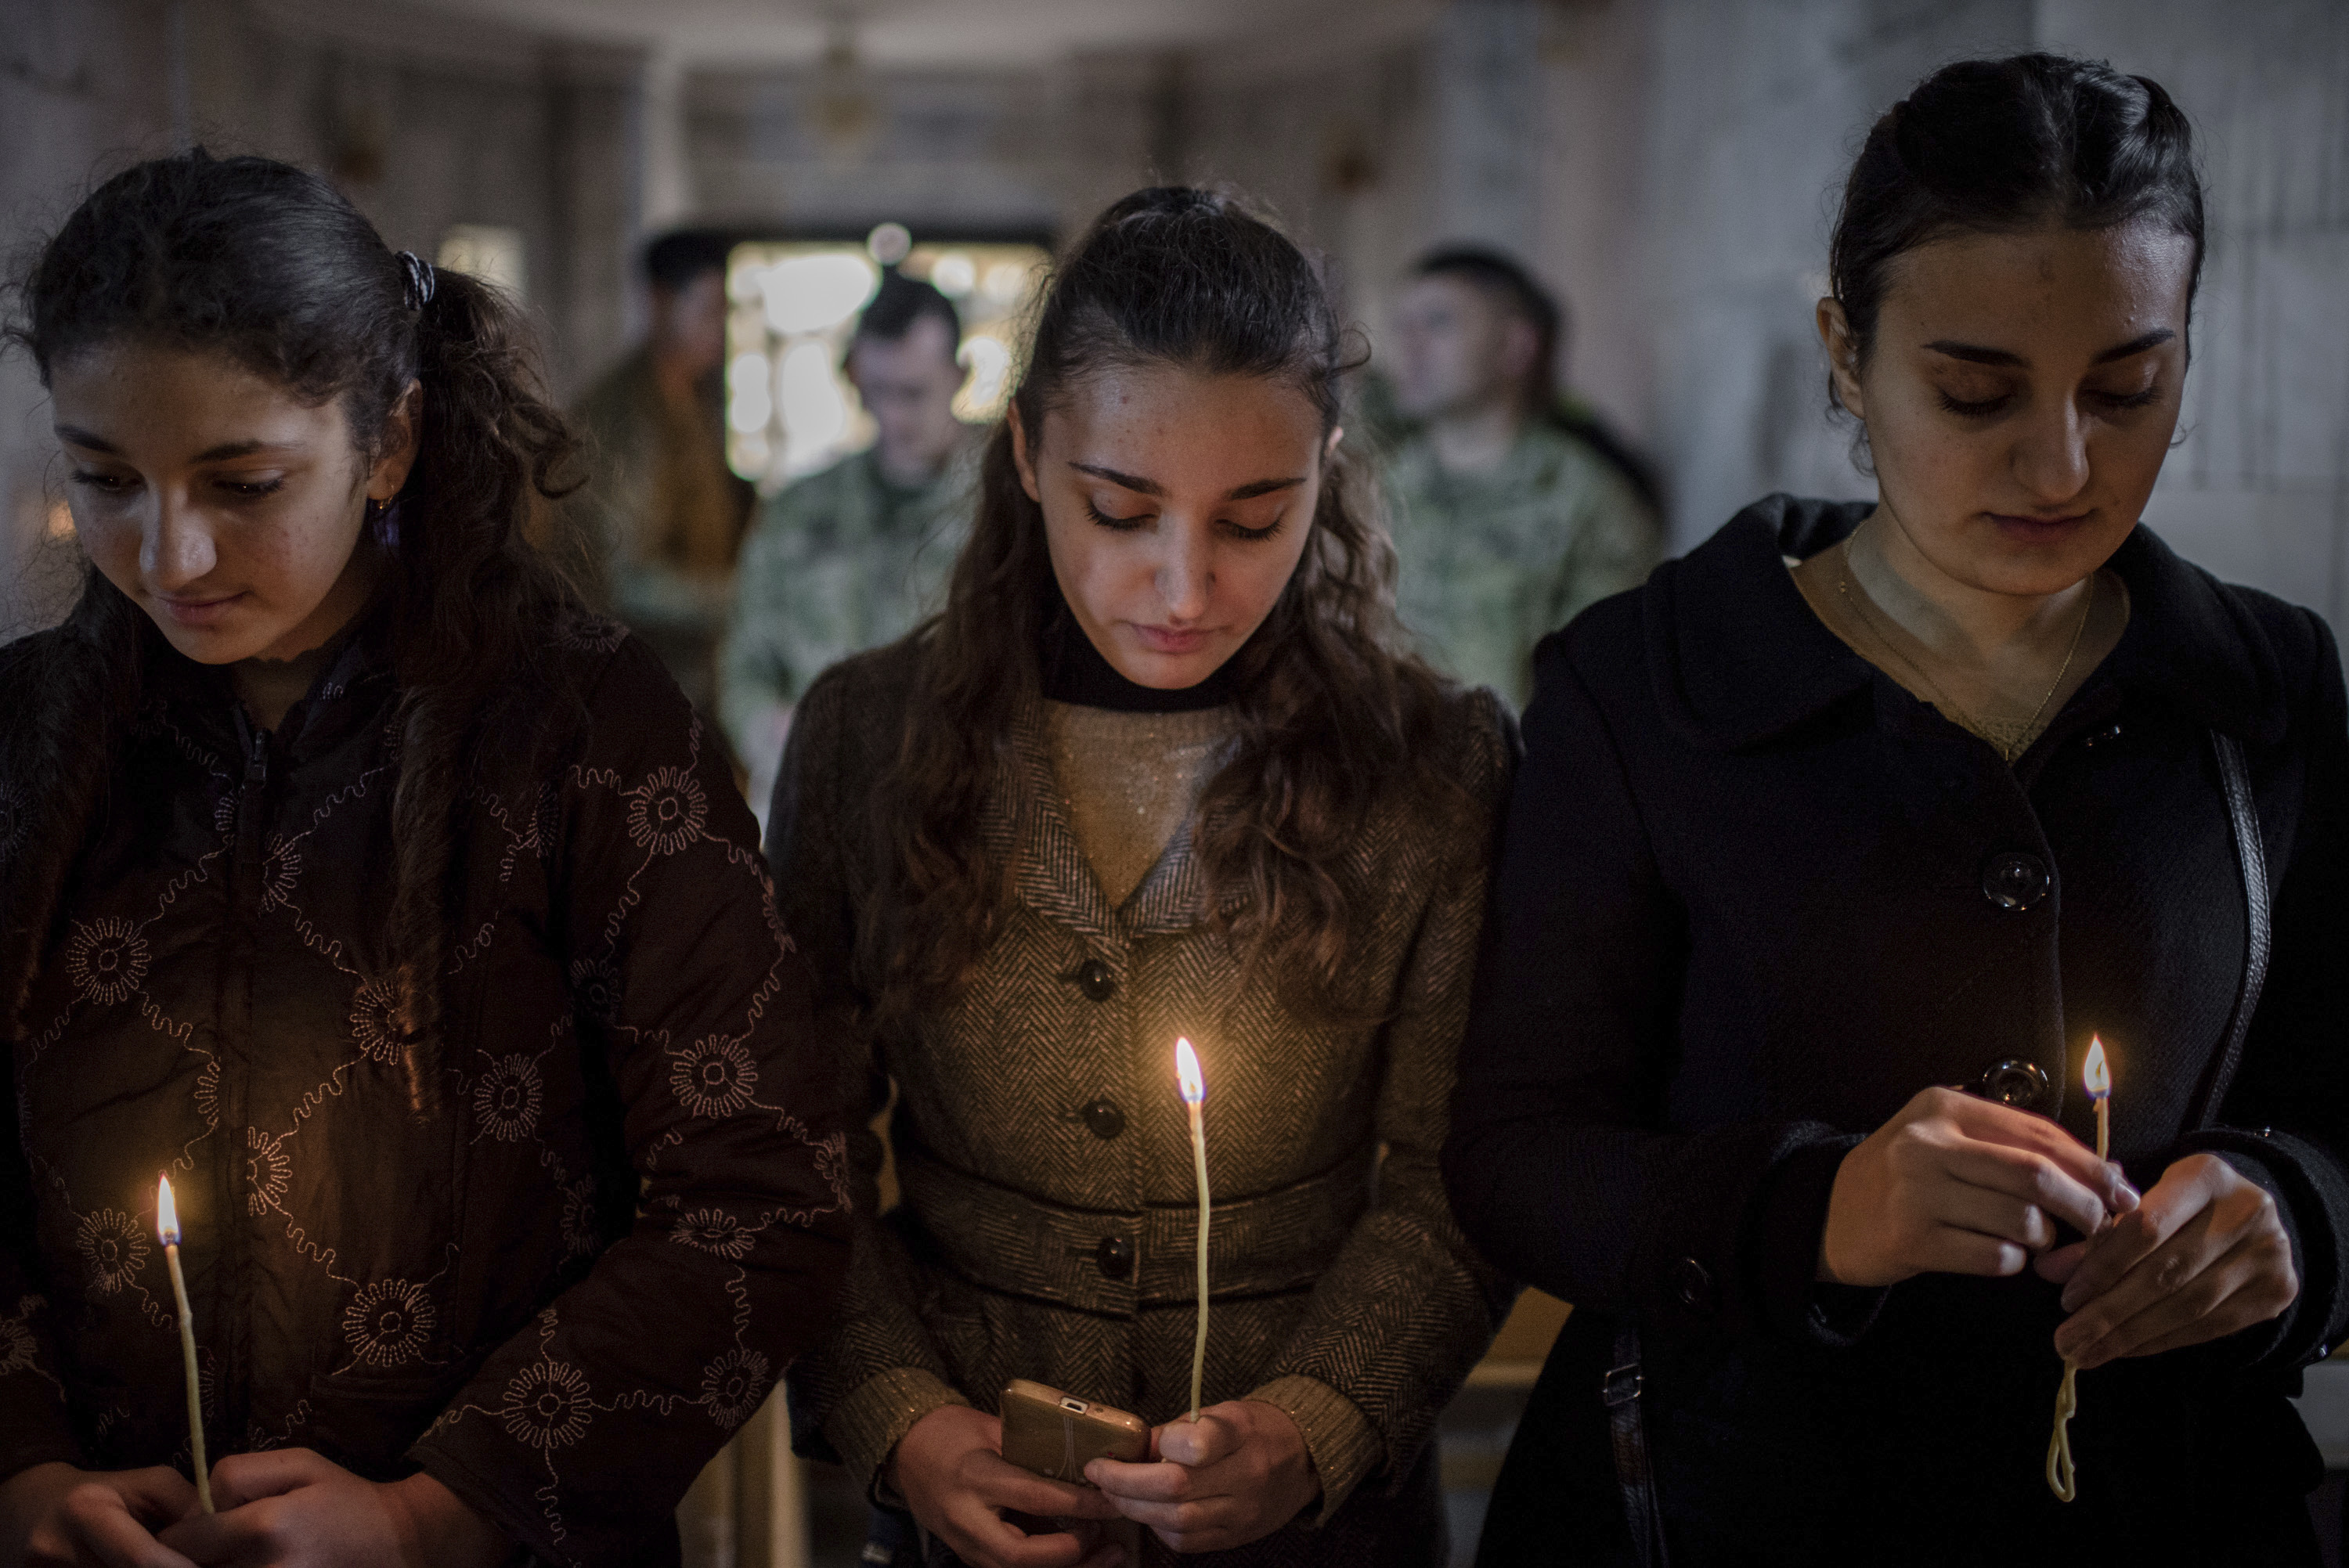 Christian Persecution 2020 Christmas Iraq In Christmas messages, Middle East patriarchs call for peace amid